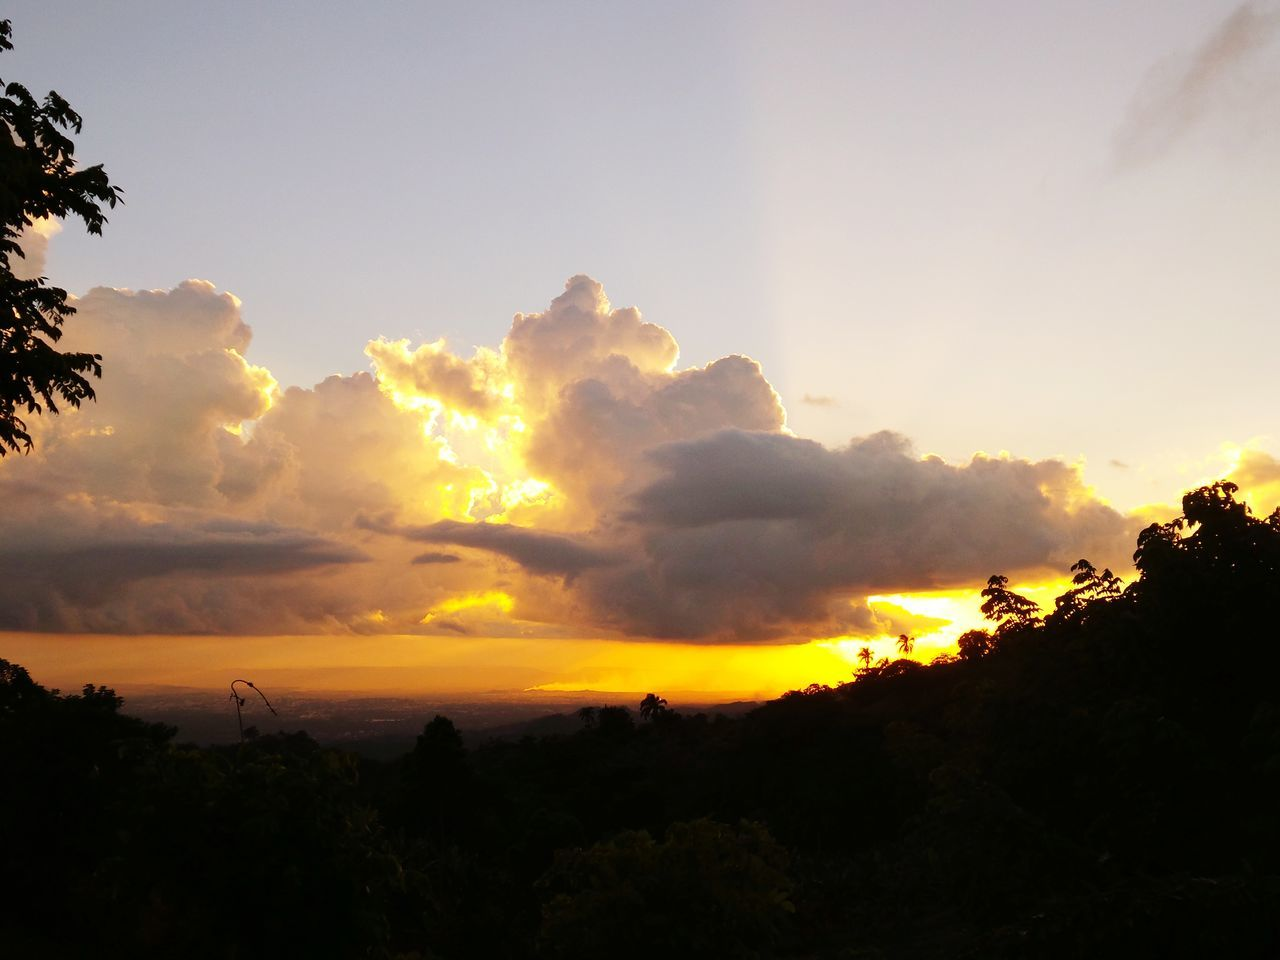 sunset, sky, silhouette, nature, beauty in nature, tranquility, tranquil scene, scenics, cloud - sky, tree, outdoors, no people, landscape, day